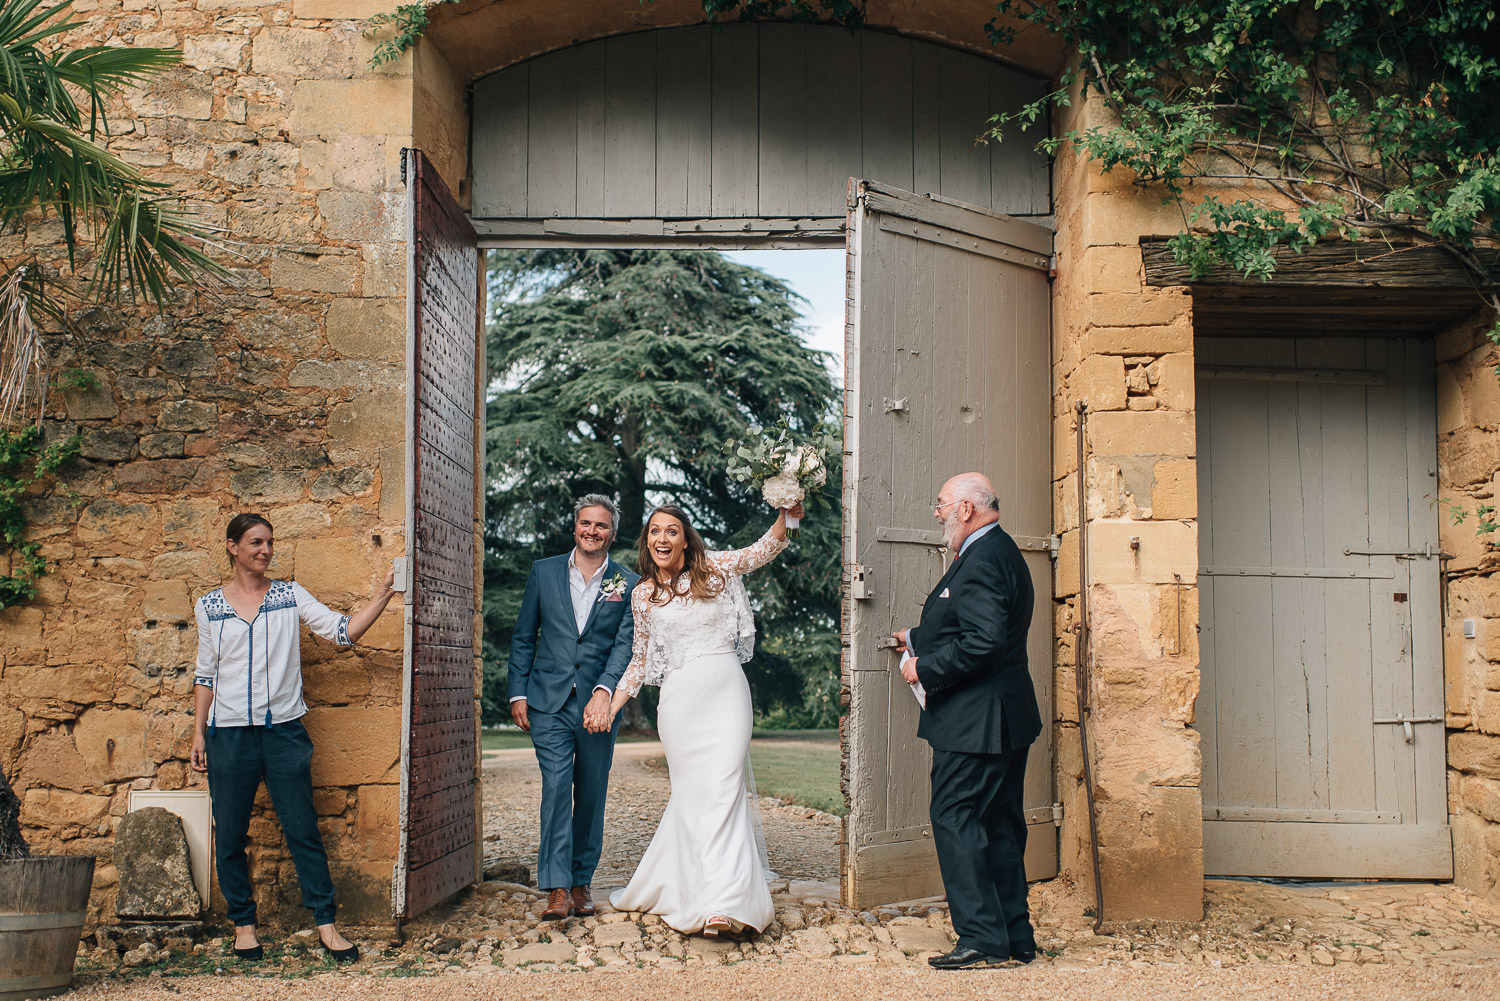 Bride and groom enter into courtyard in chateau de la bourlie wedding by french destination wedding photographer the shannons photography